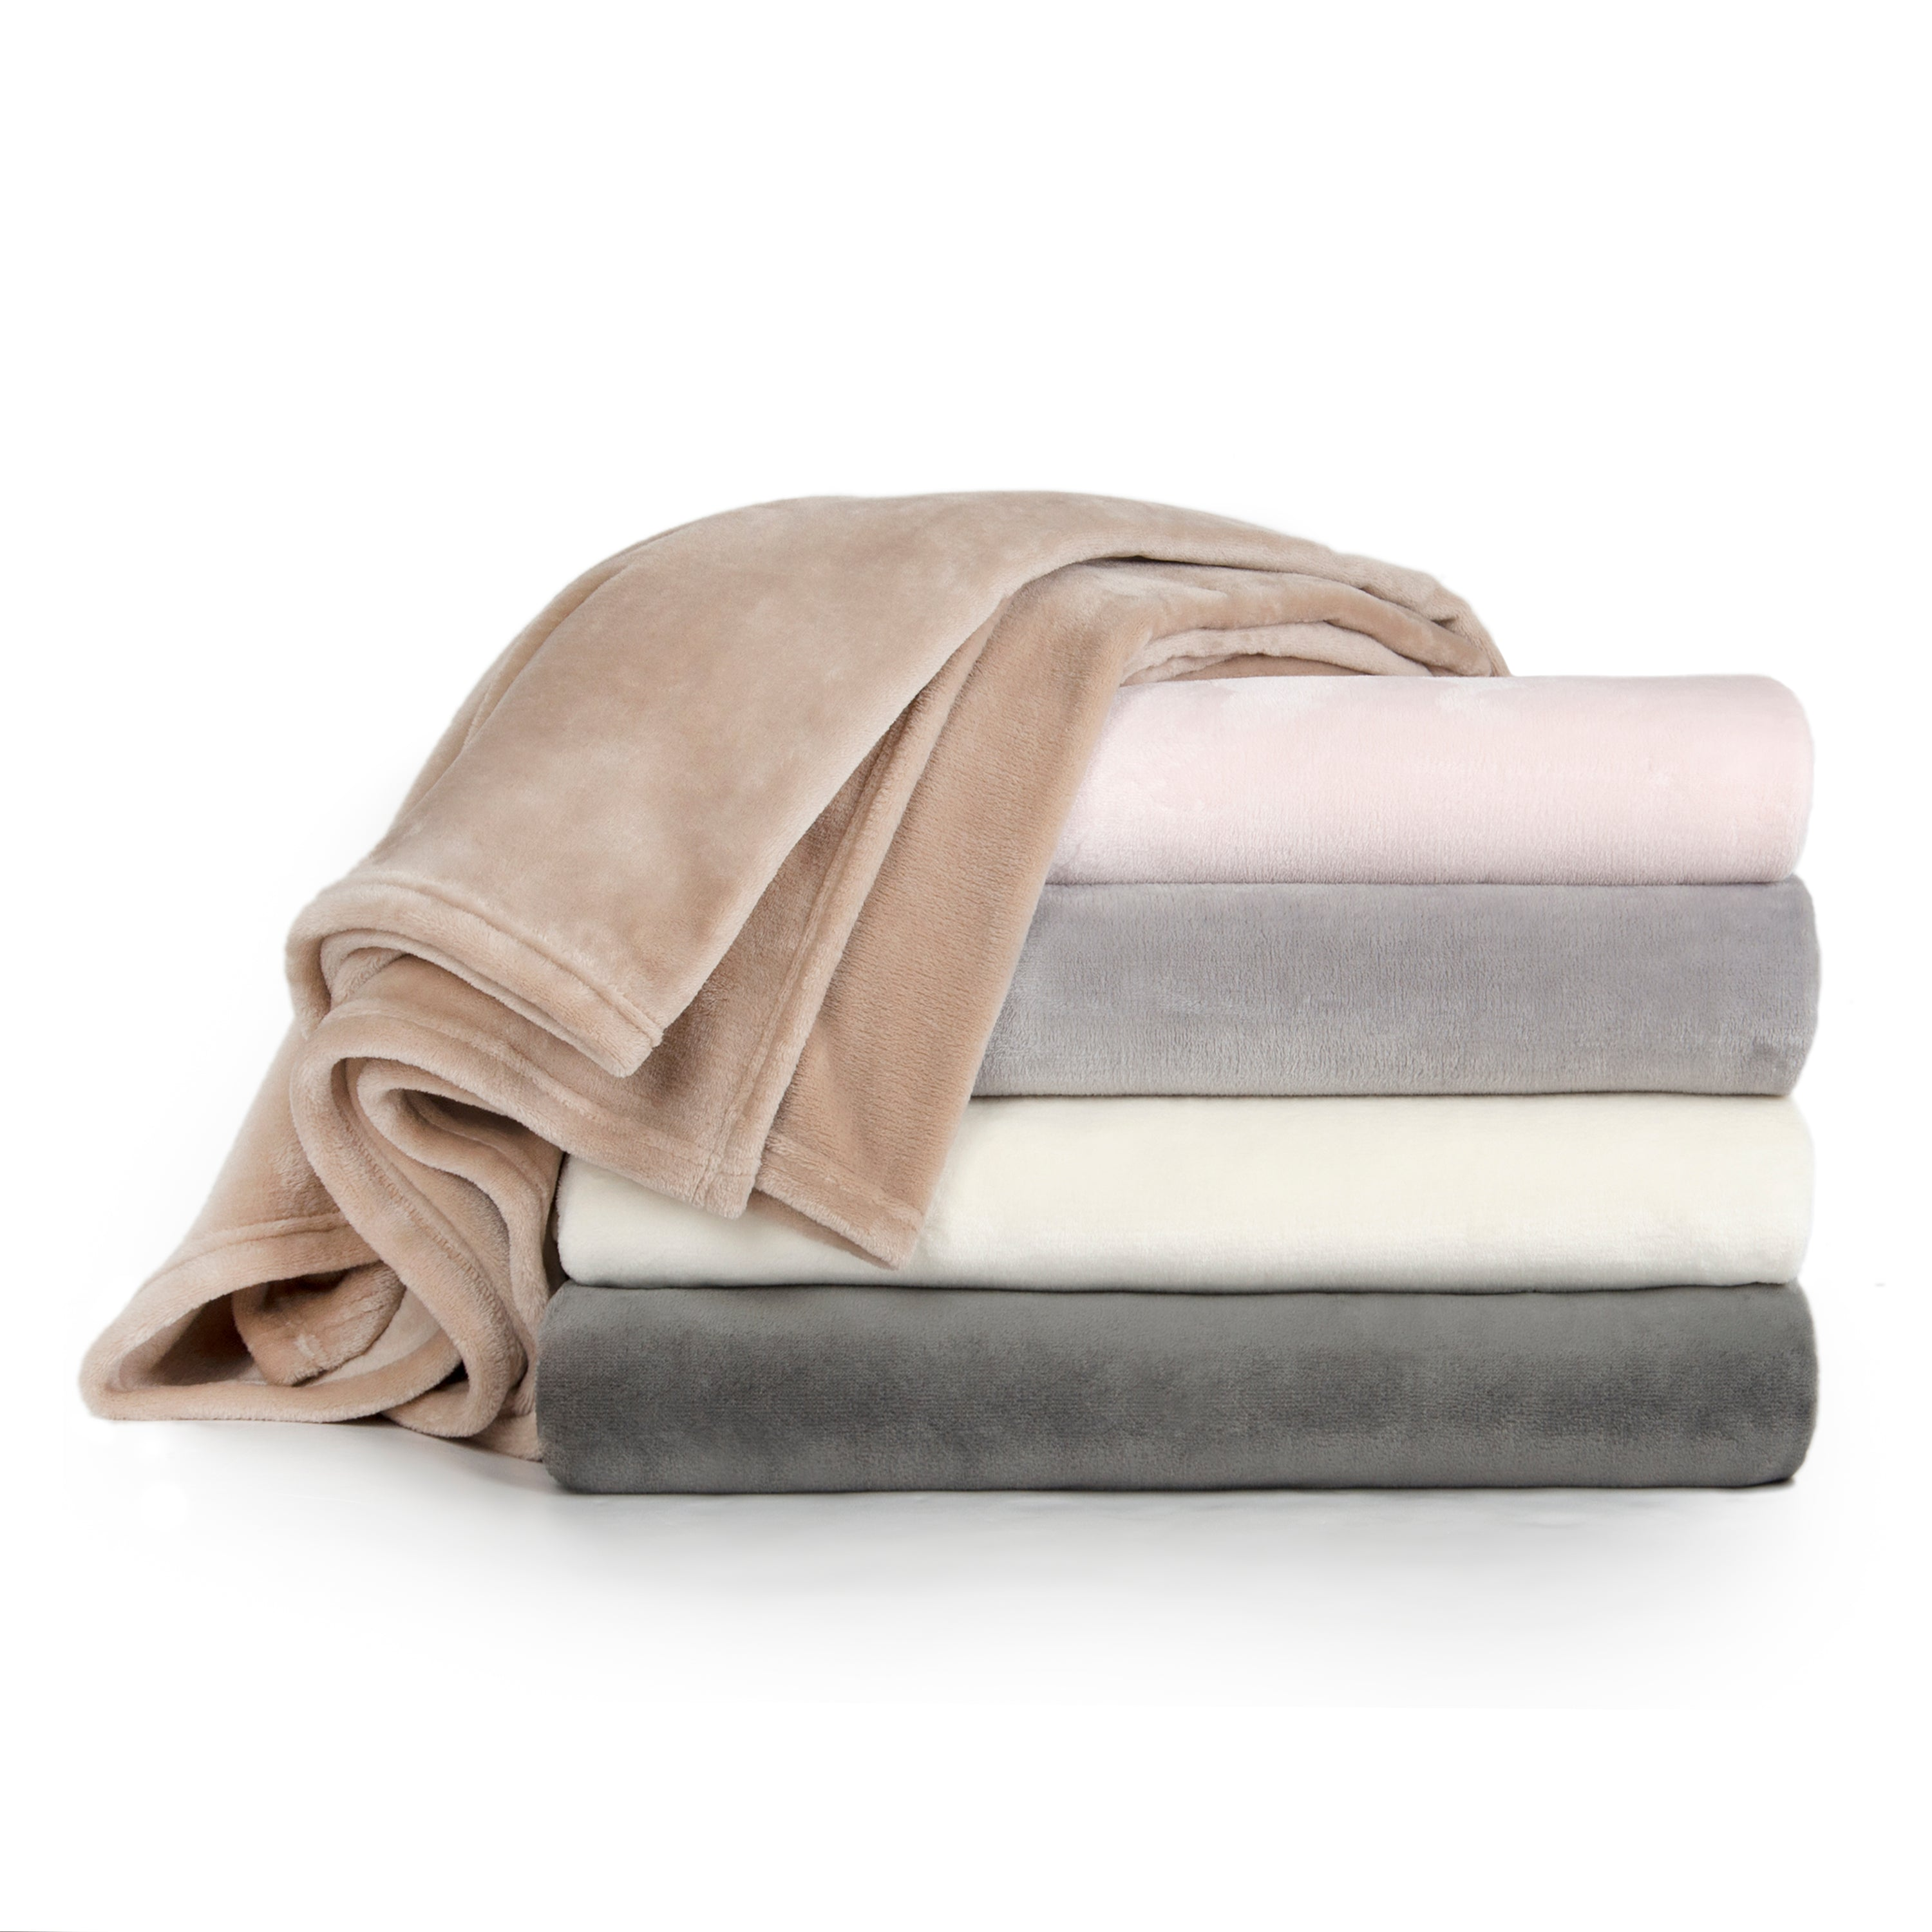 Sleeping Partners LUXE Solid Plush Blanket